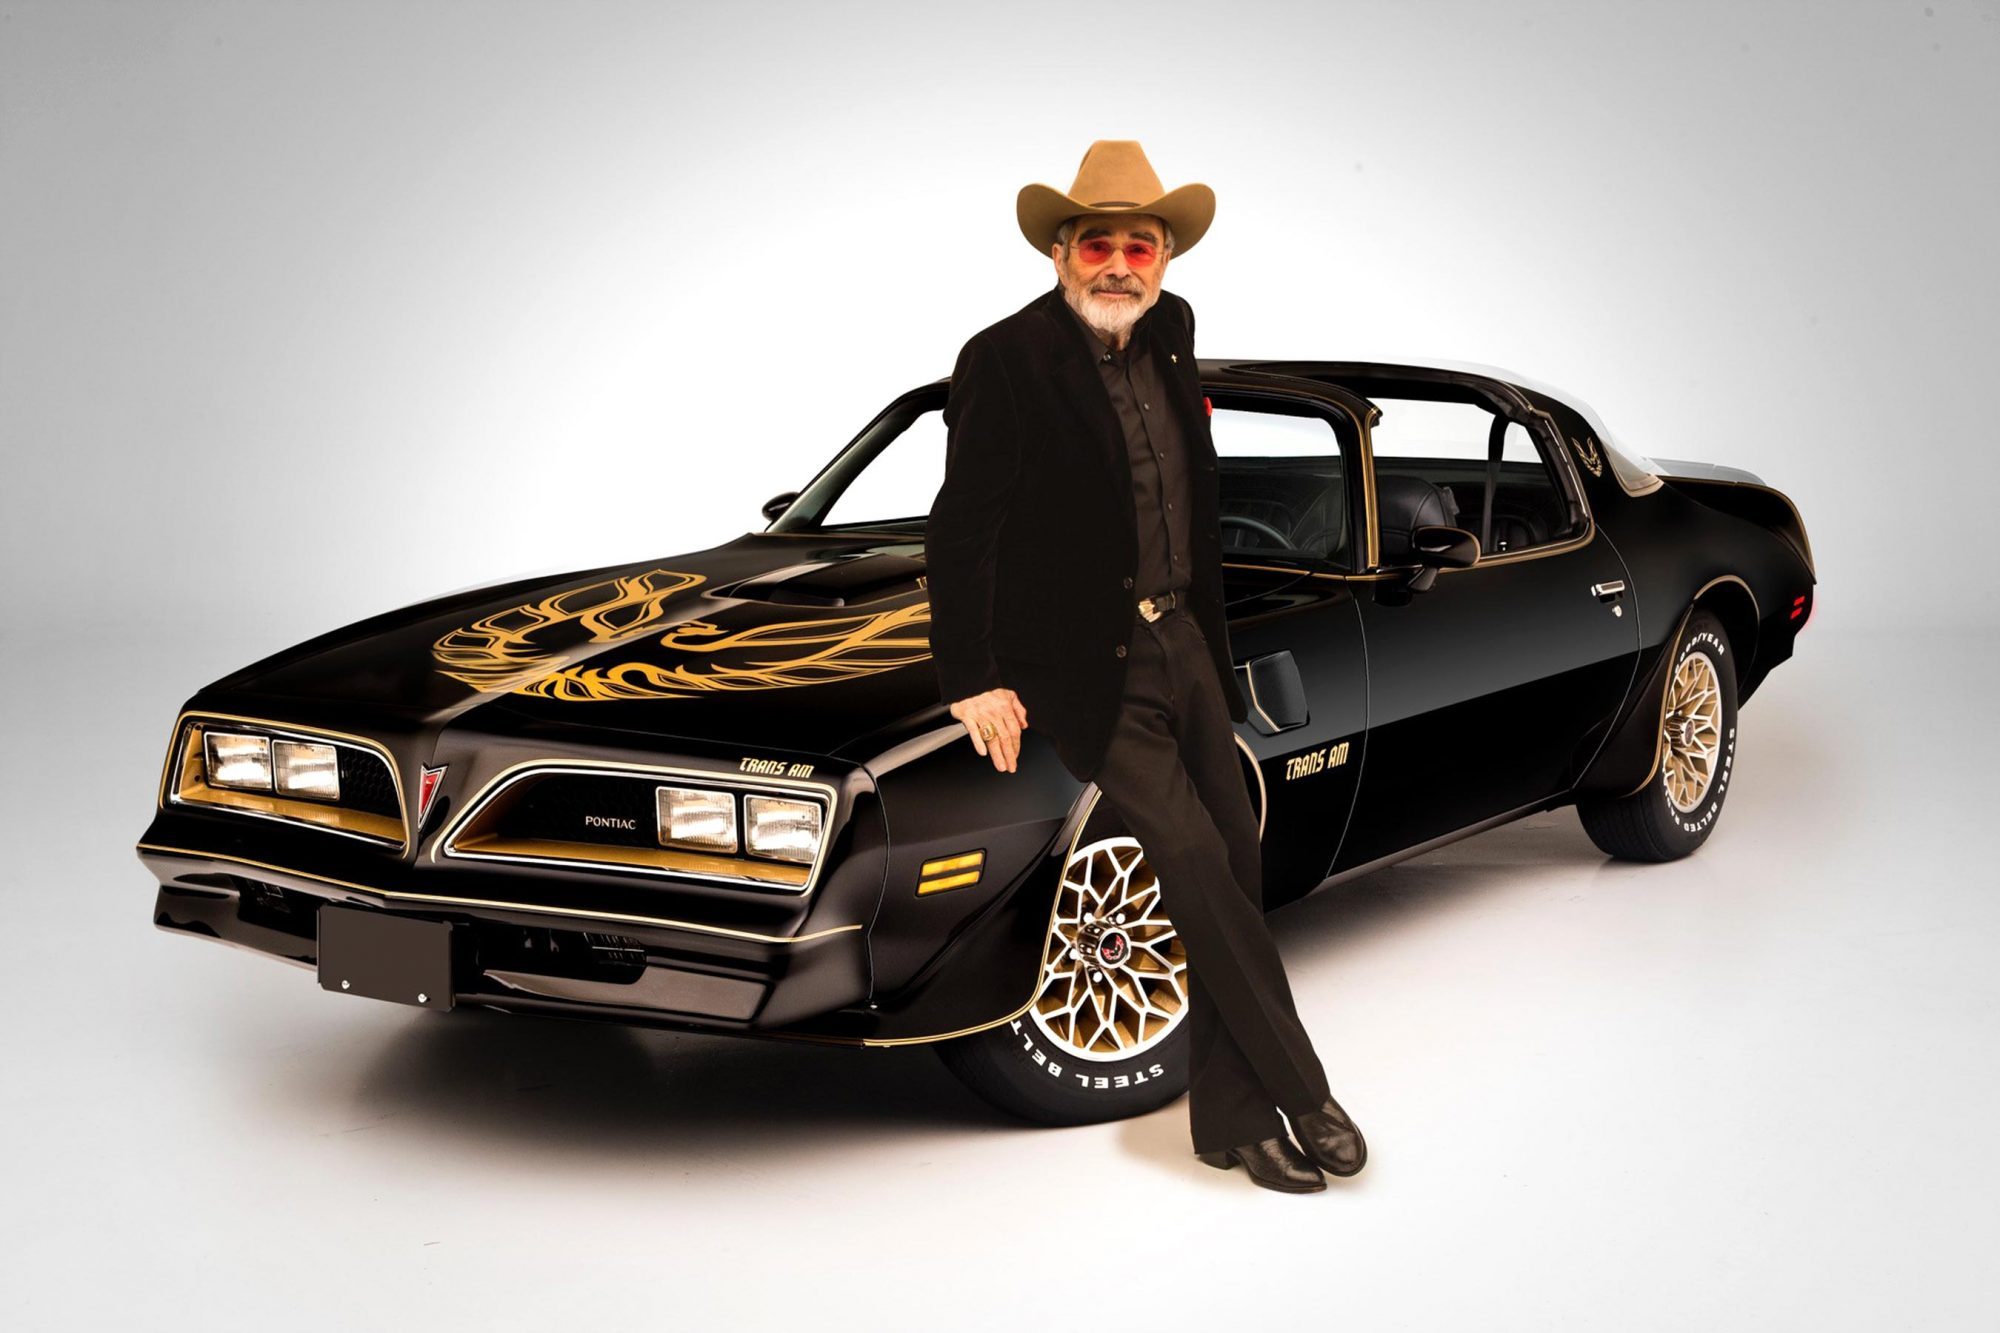 Burt-Reynolds-with-his-1977-Pontaic-Firebird-Trans-Am-Smokey-and-the-Bandit-Promo-car---sold-for-$550,000-at-the-Scottsdale-2016-Auction